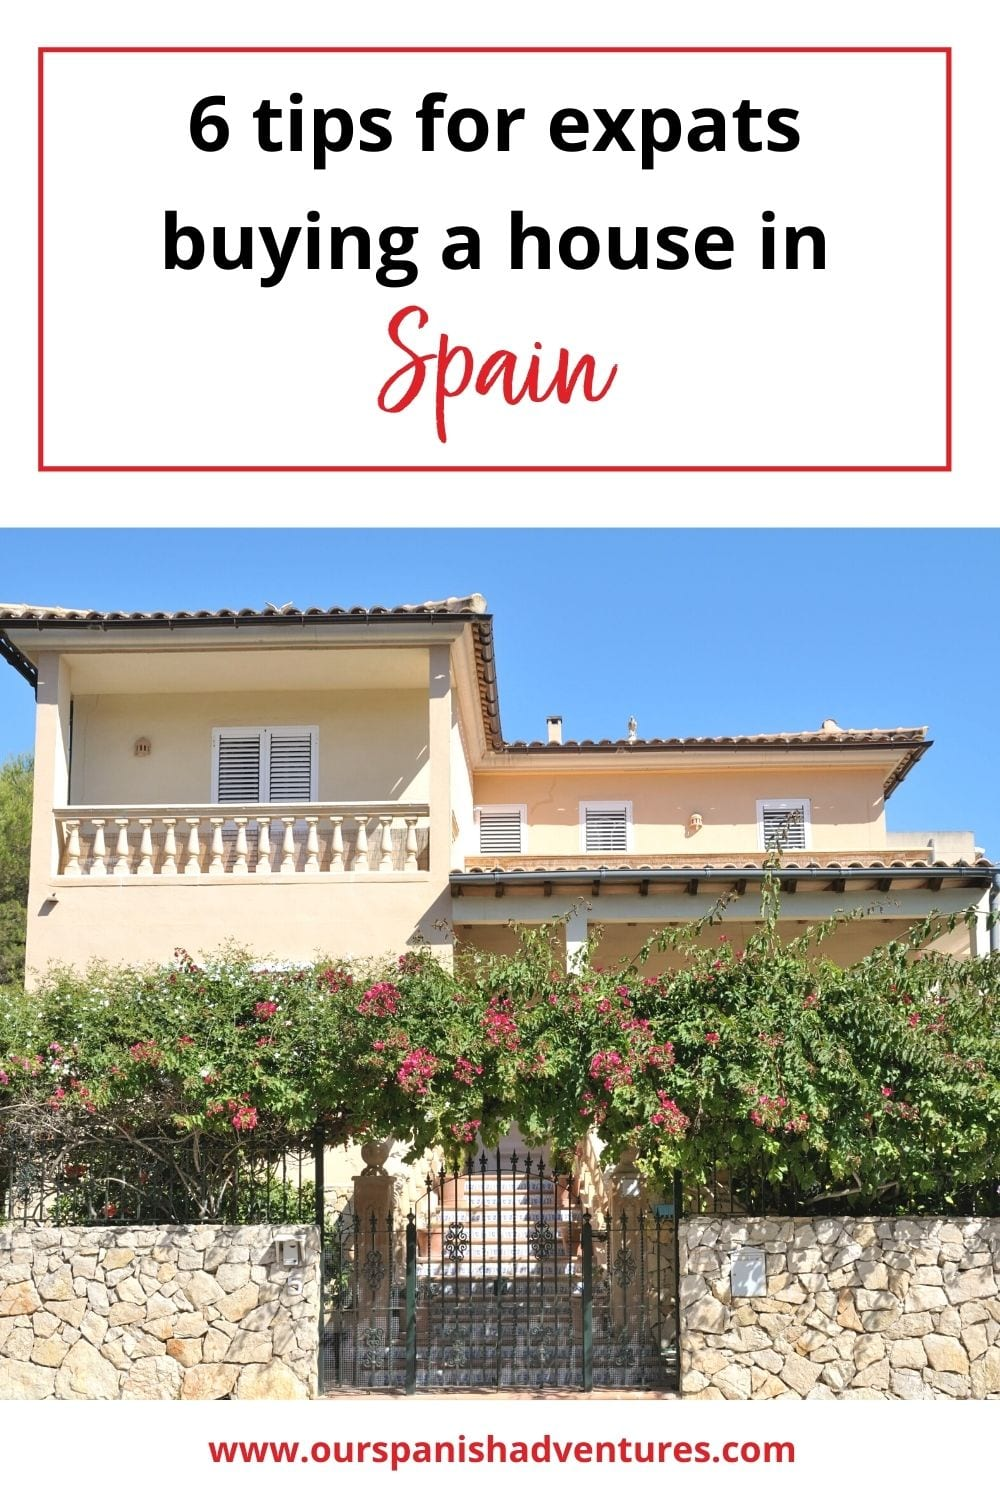 6 tips for expats buying a house in Spain   Our Spanish Adventures